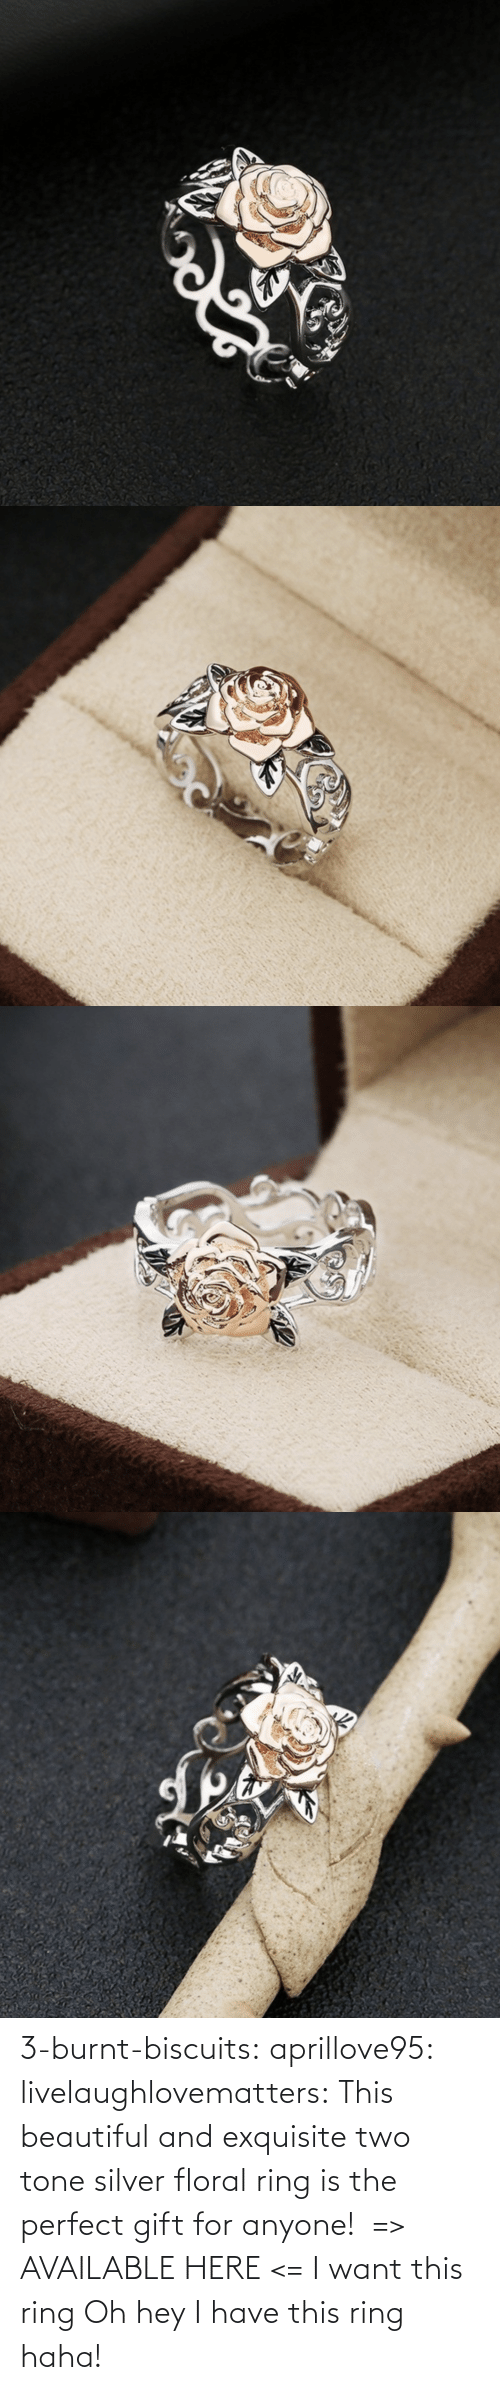 ring: 3-burnt-biscuits: aprillove95:  livelaughlovematters:  This beautiful and exquisite two tone silver floral ring is the perfect gift for anyone!  => AVAILABLE HERE <=    I want this ring     Oh hey I have this ring haha!